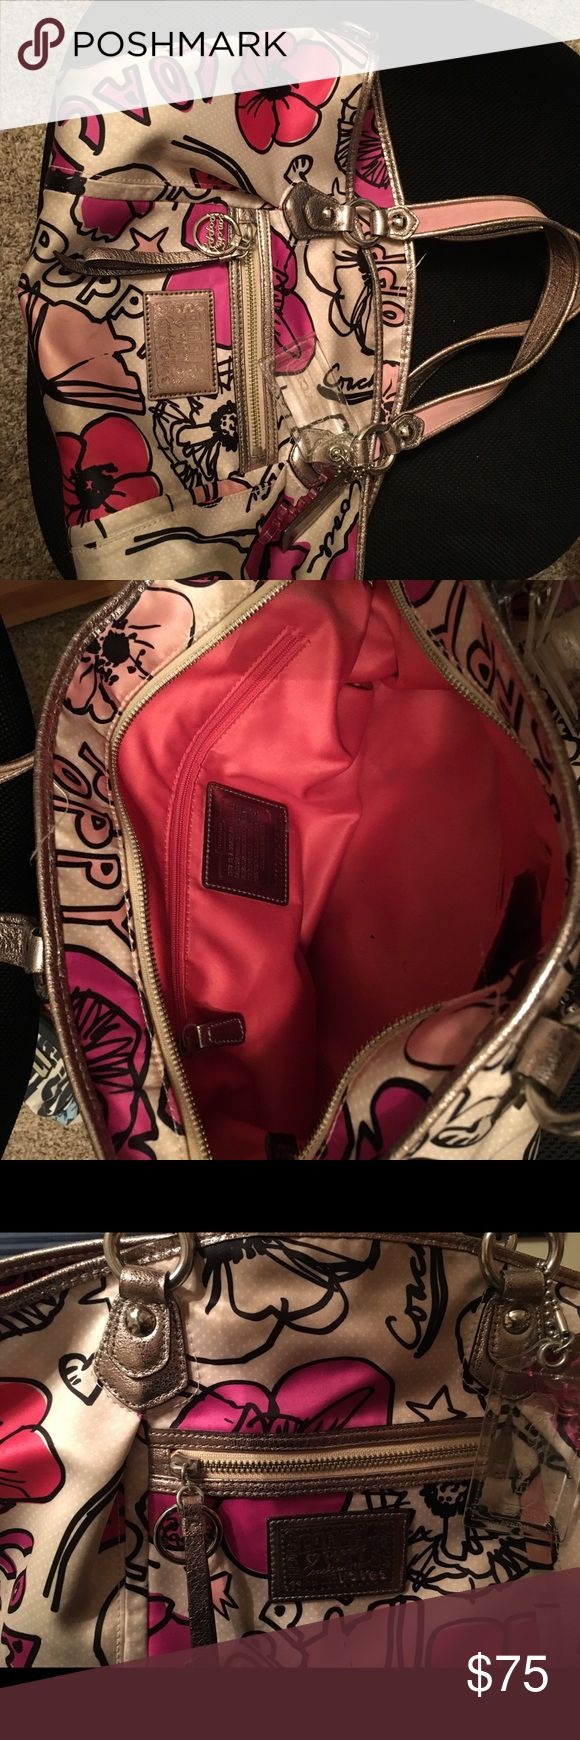 Coach Poppy Purse Beautiful Coach Poppy purse.  Used with some wear and tear but still in great shape. Smoke free home Coach Bags Shoulder Bags